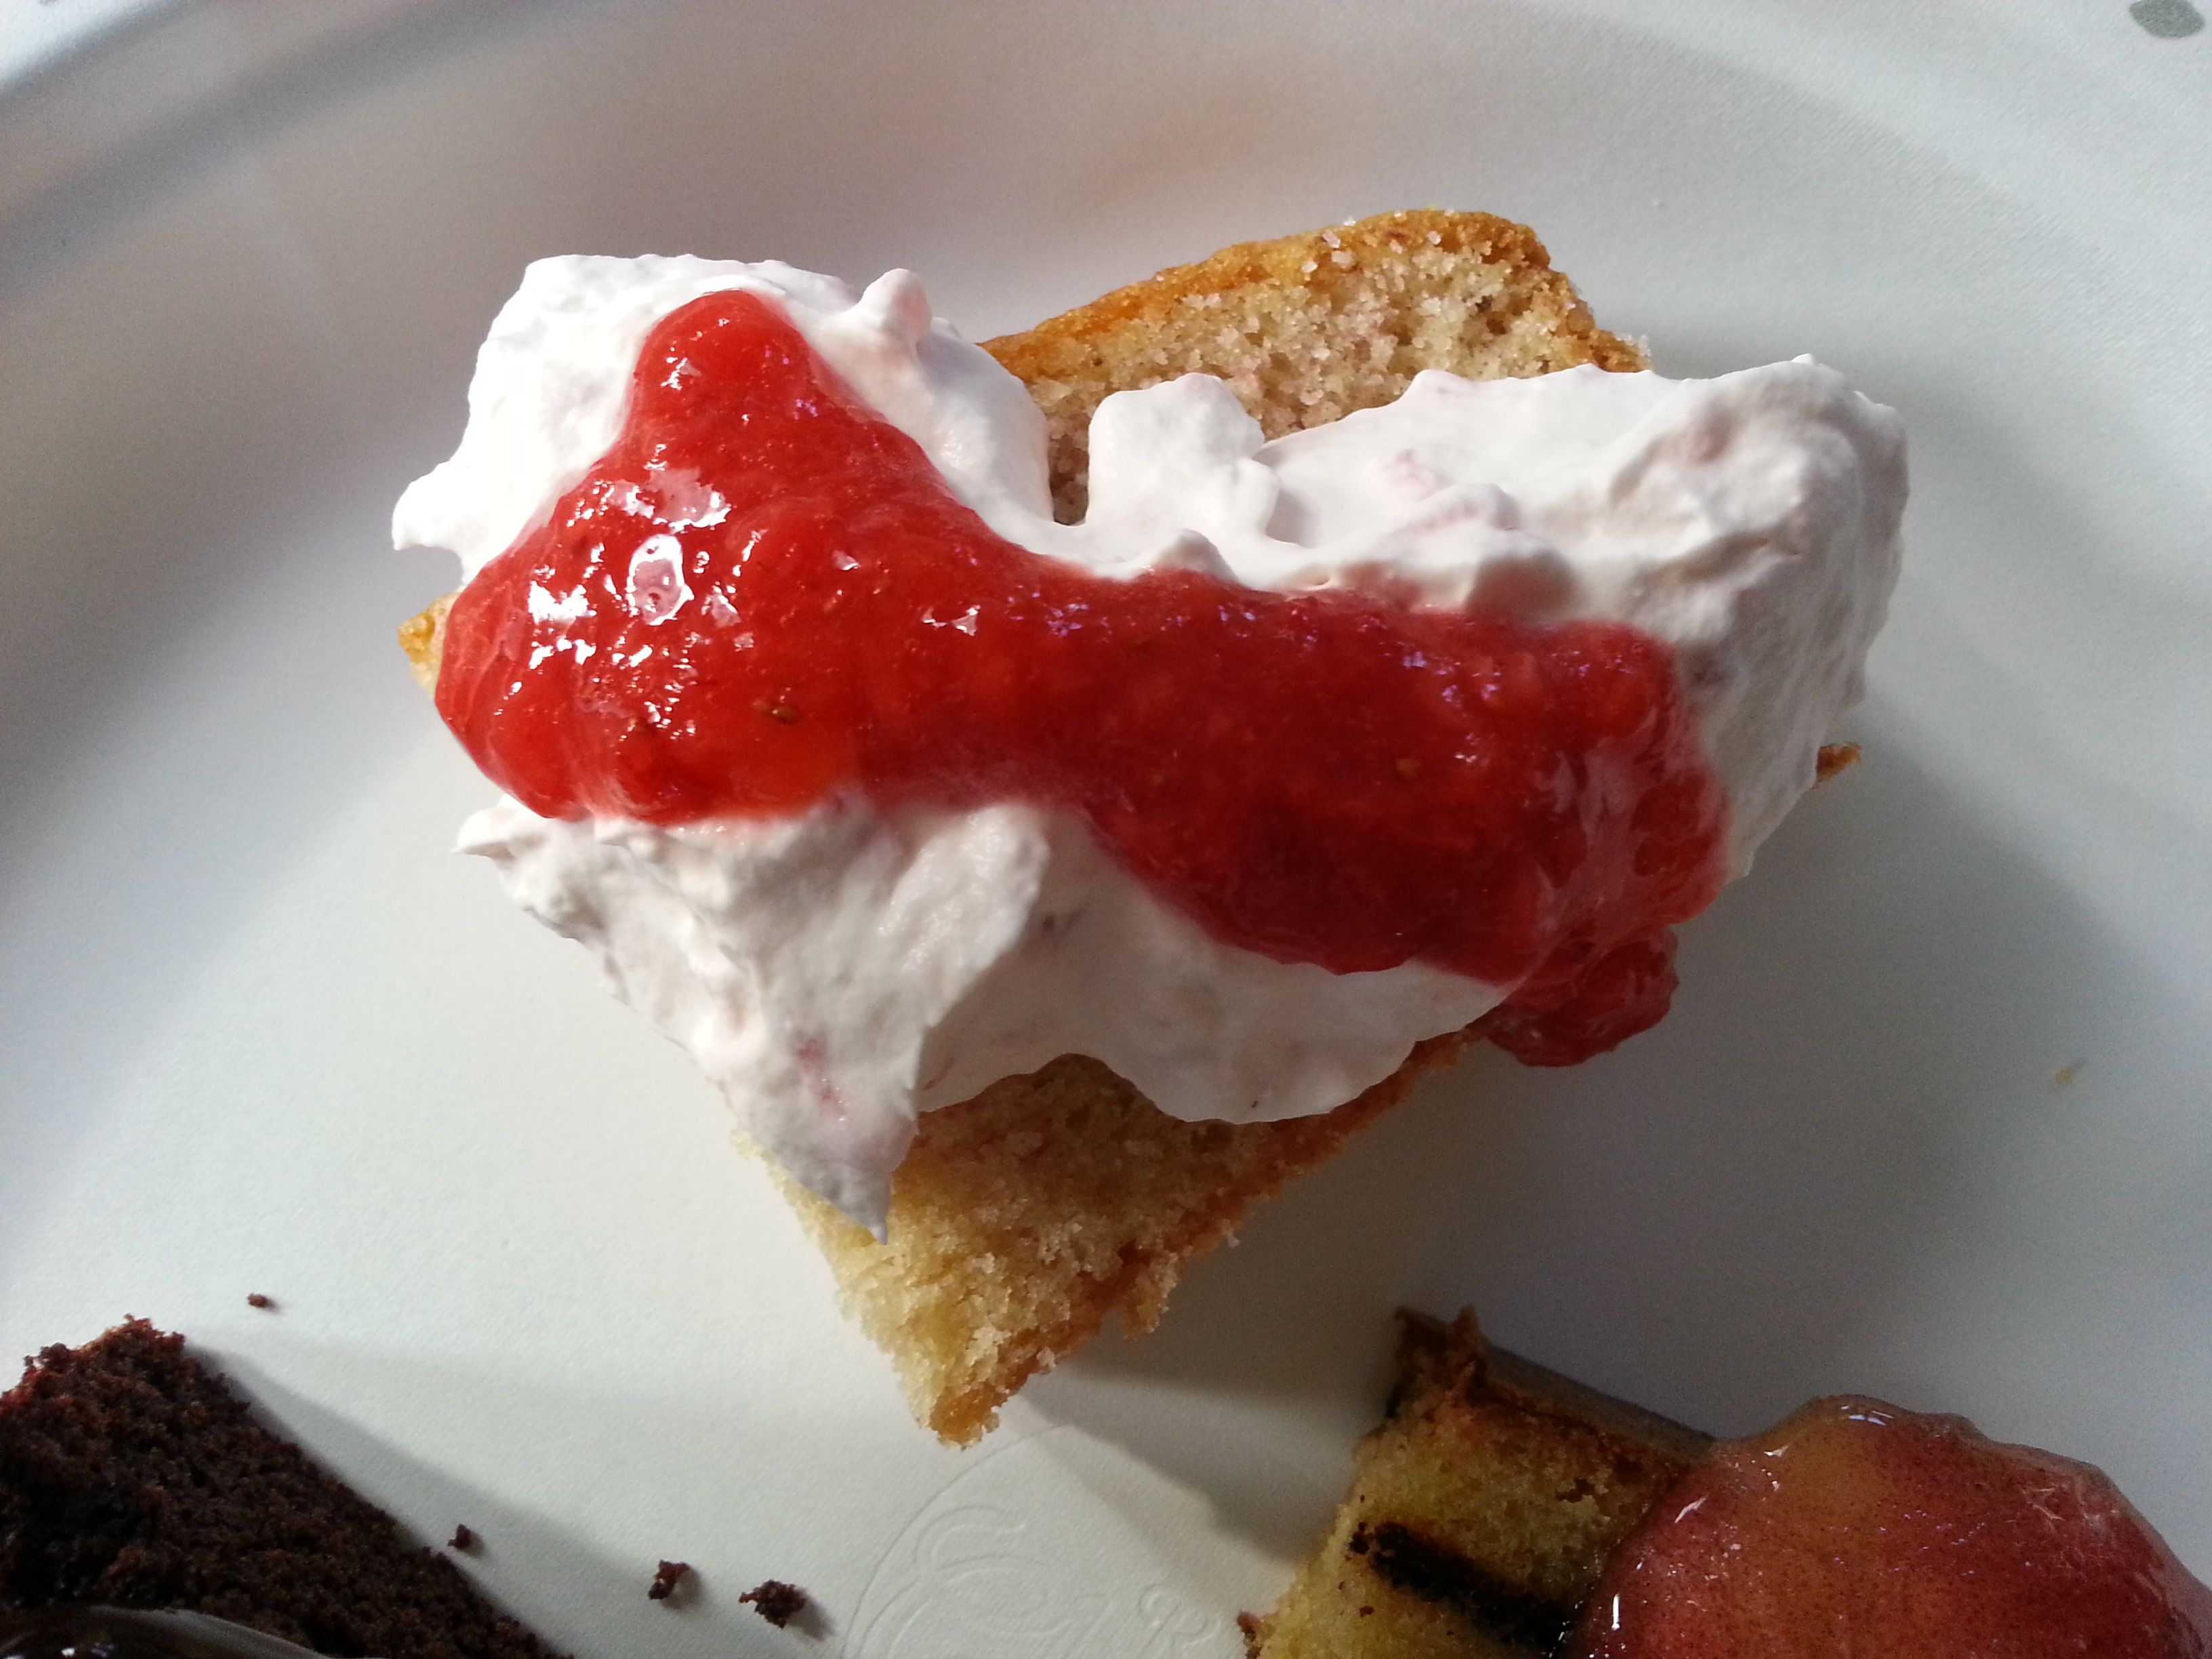 A slice of Fresh Strawberry Cake with Strawberry Whipped Cream and Strawberry Puree.